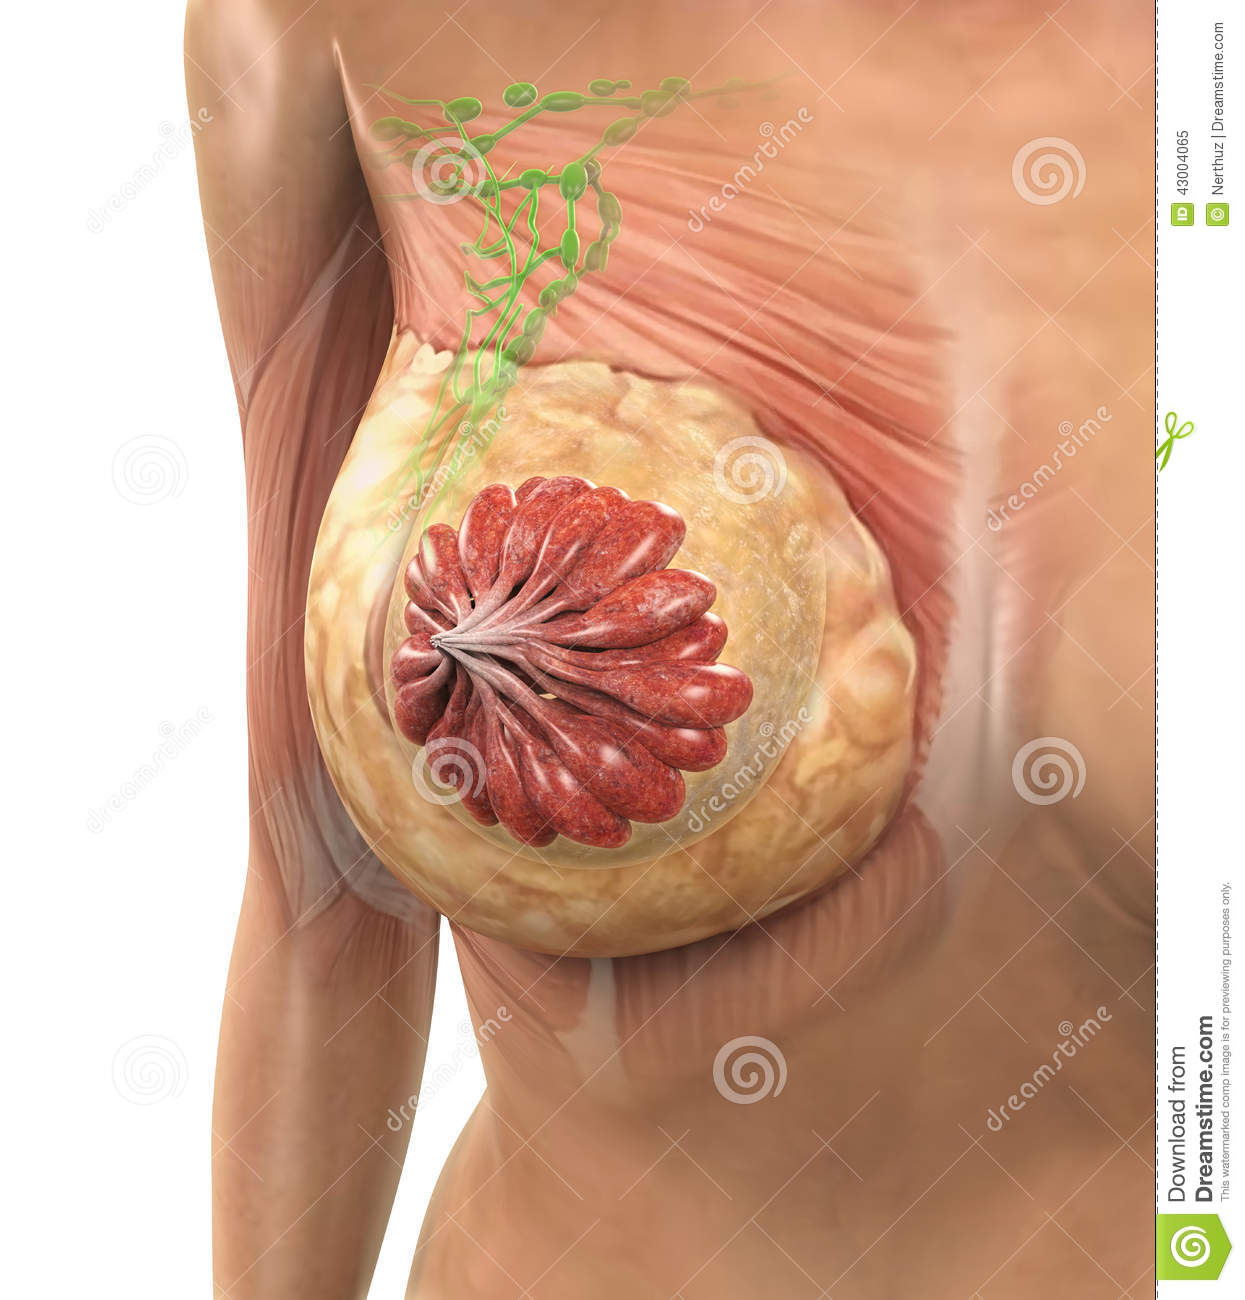 Female Breast Anatomy stock illustration. Illustration of breast ...